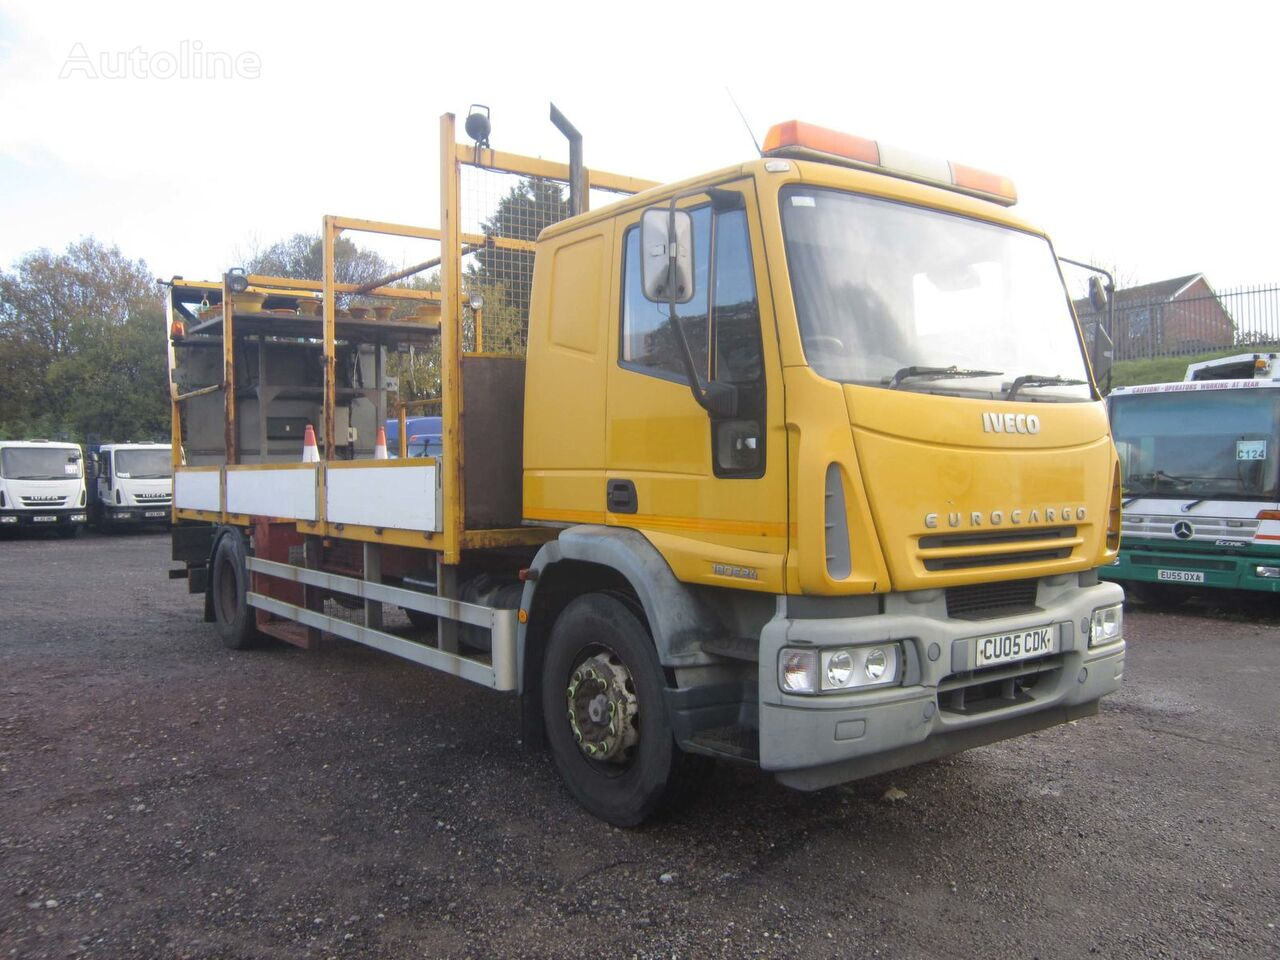 IVECO EURO CARGO 180E24 4X2 18TON SLEEPER CAB CRASH CUSHION flatbed truck